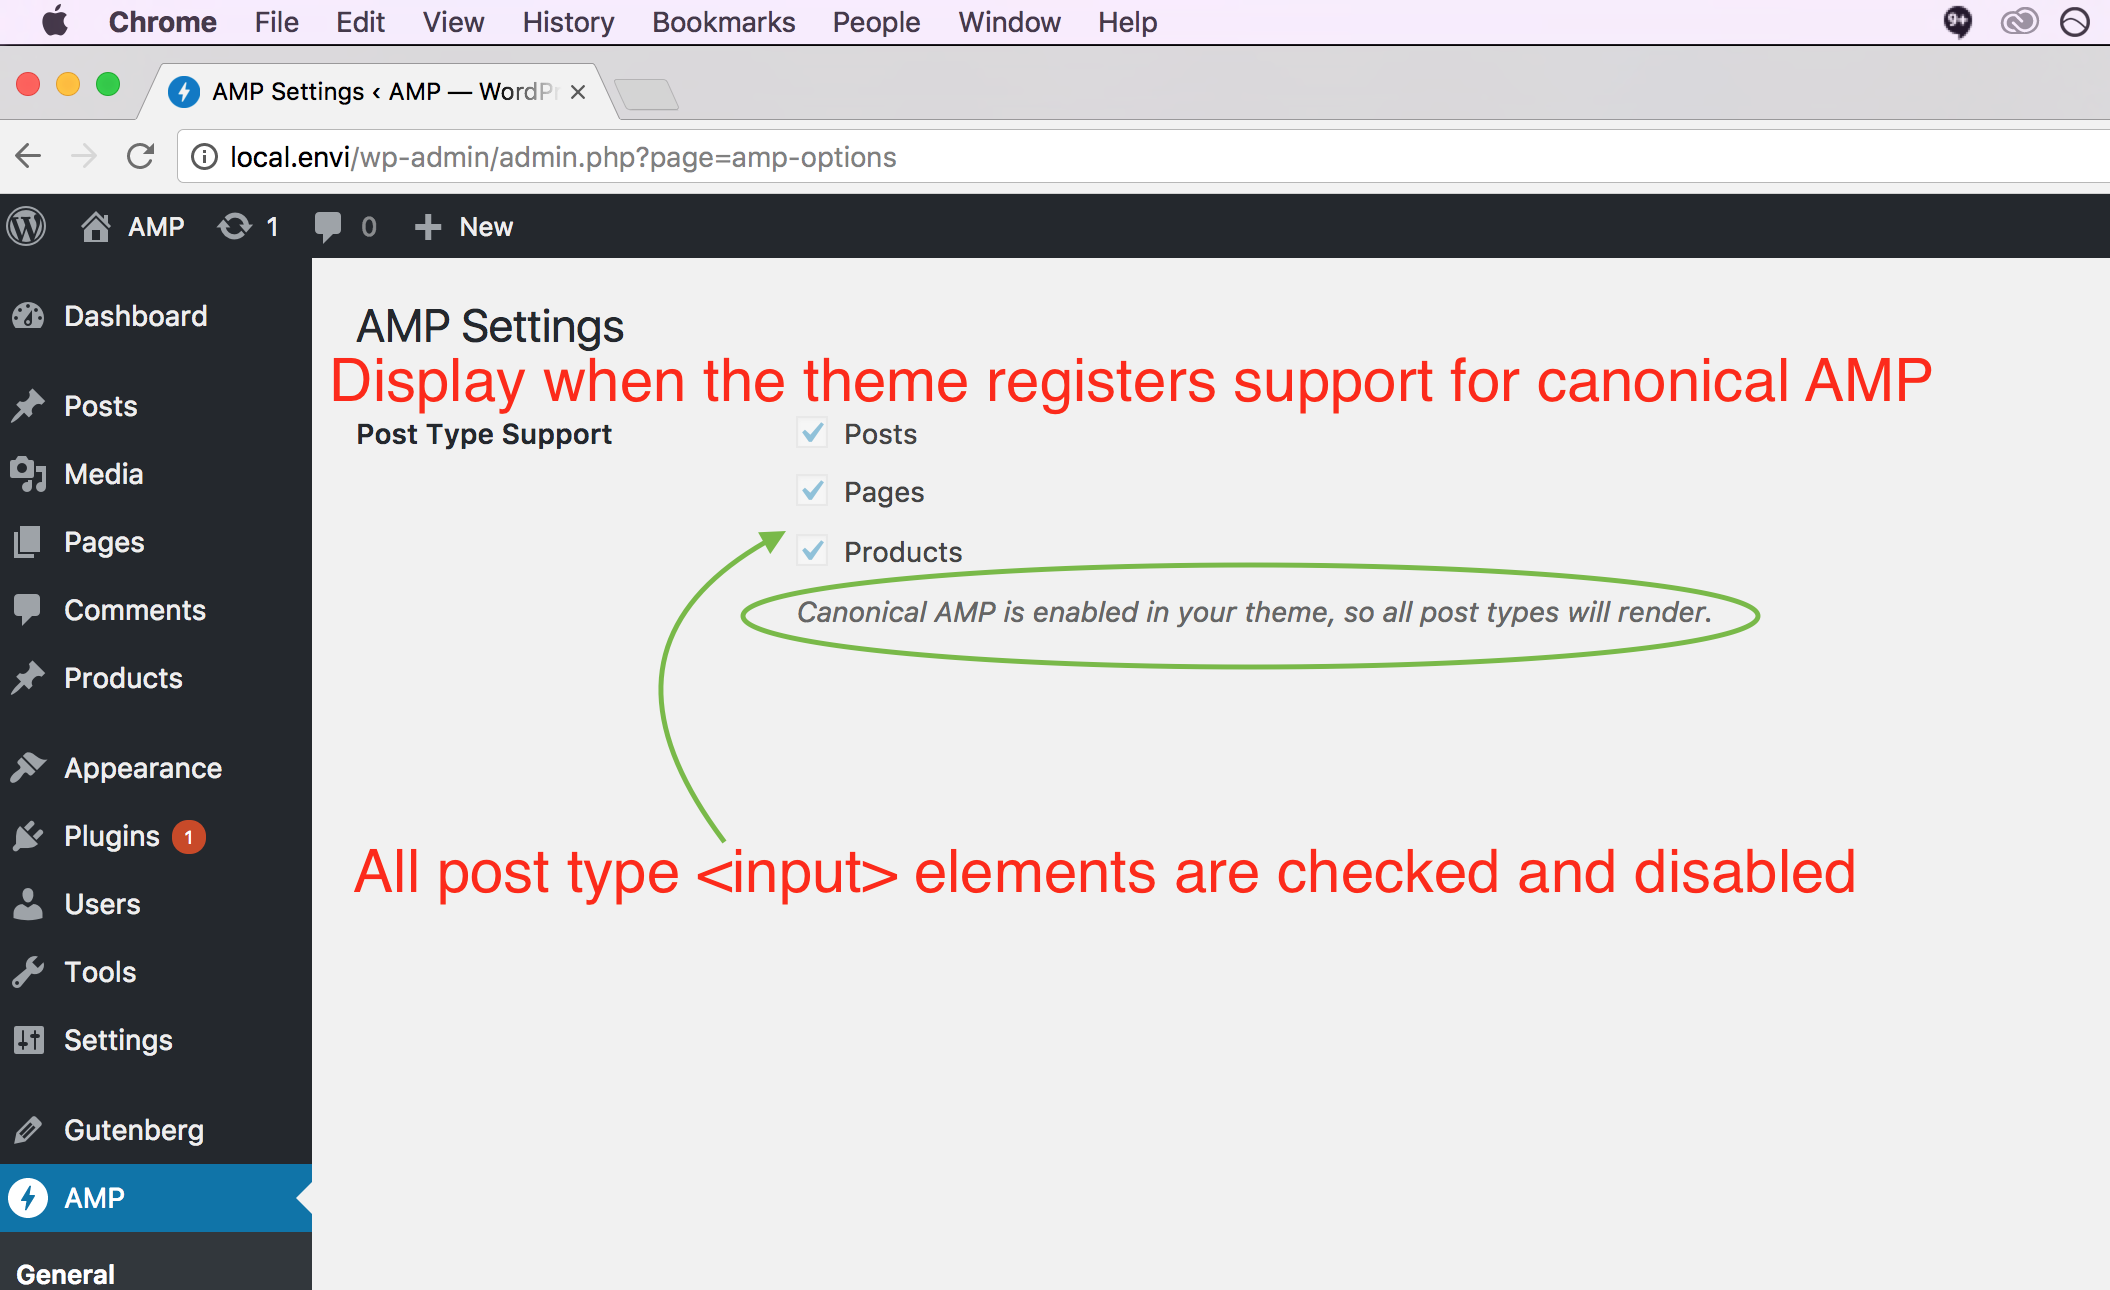 theme-registers-support-canonical-amp